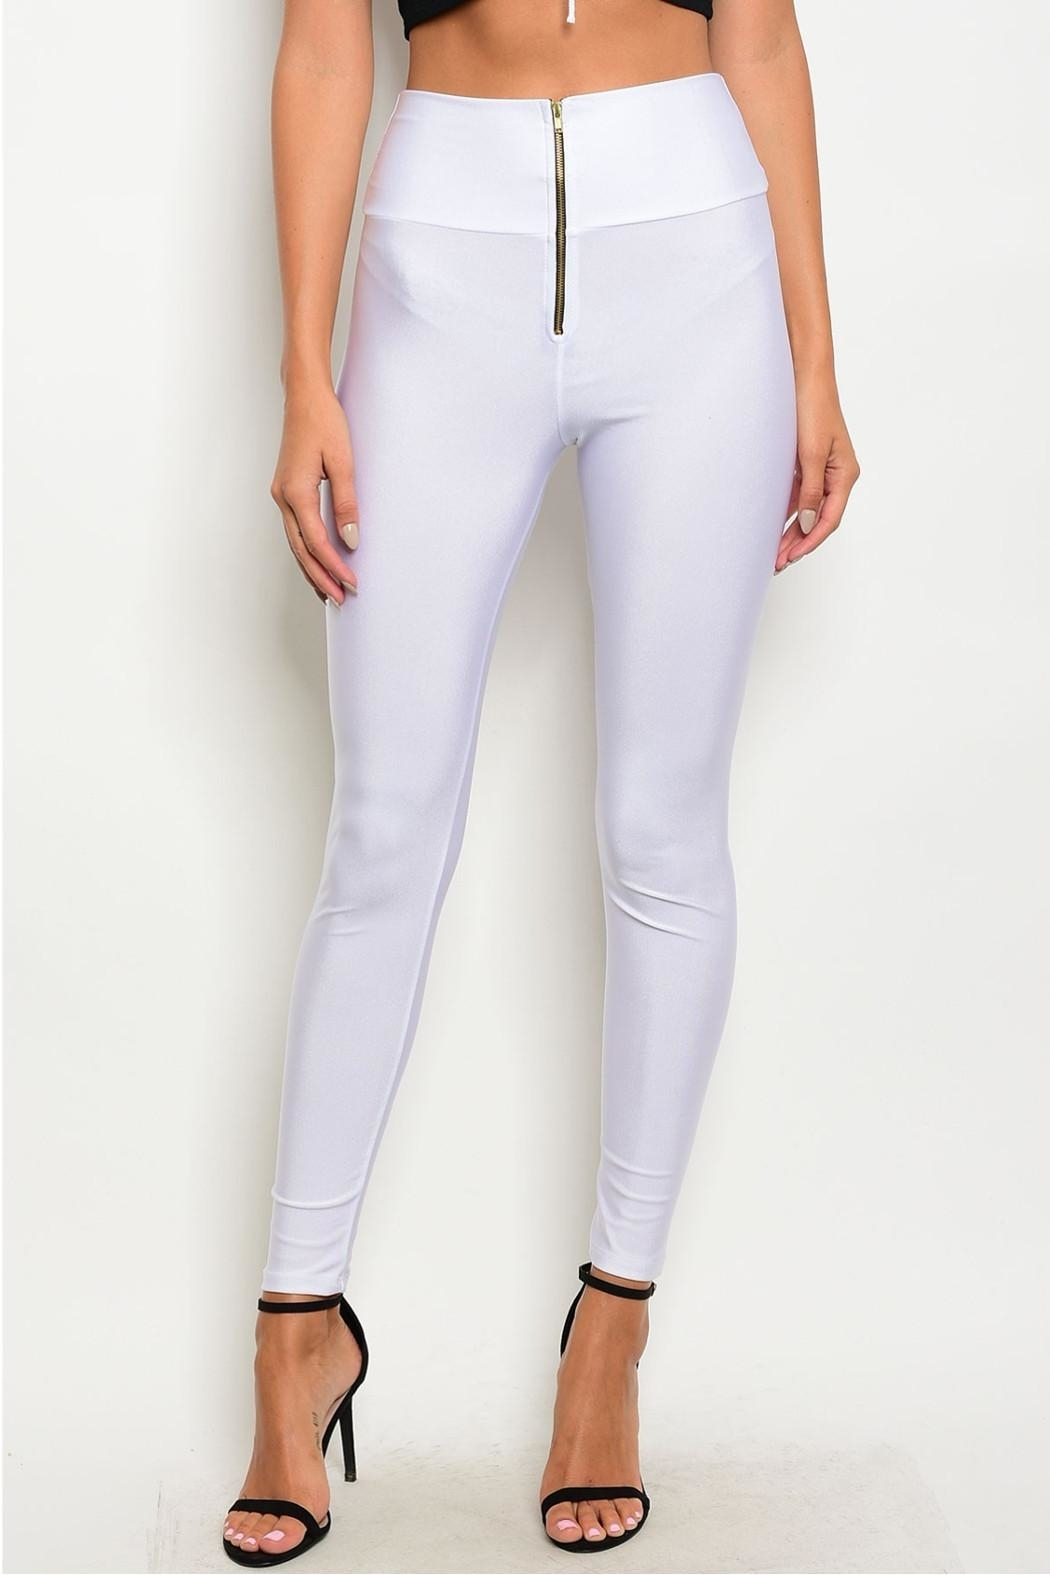 T Mani White Zip Leggings - Main Image